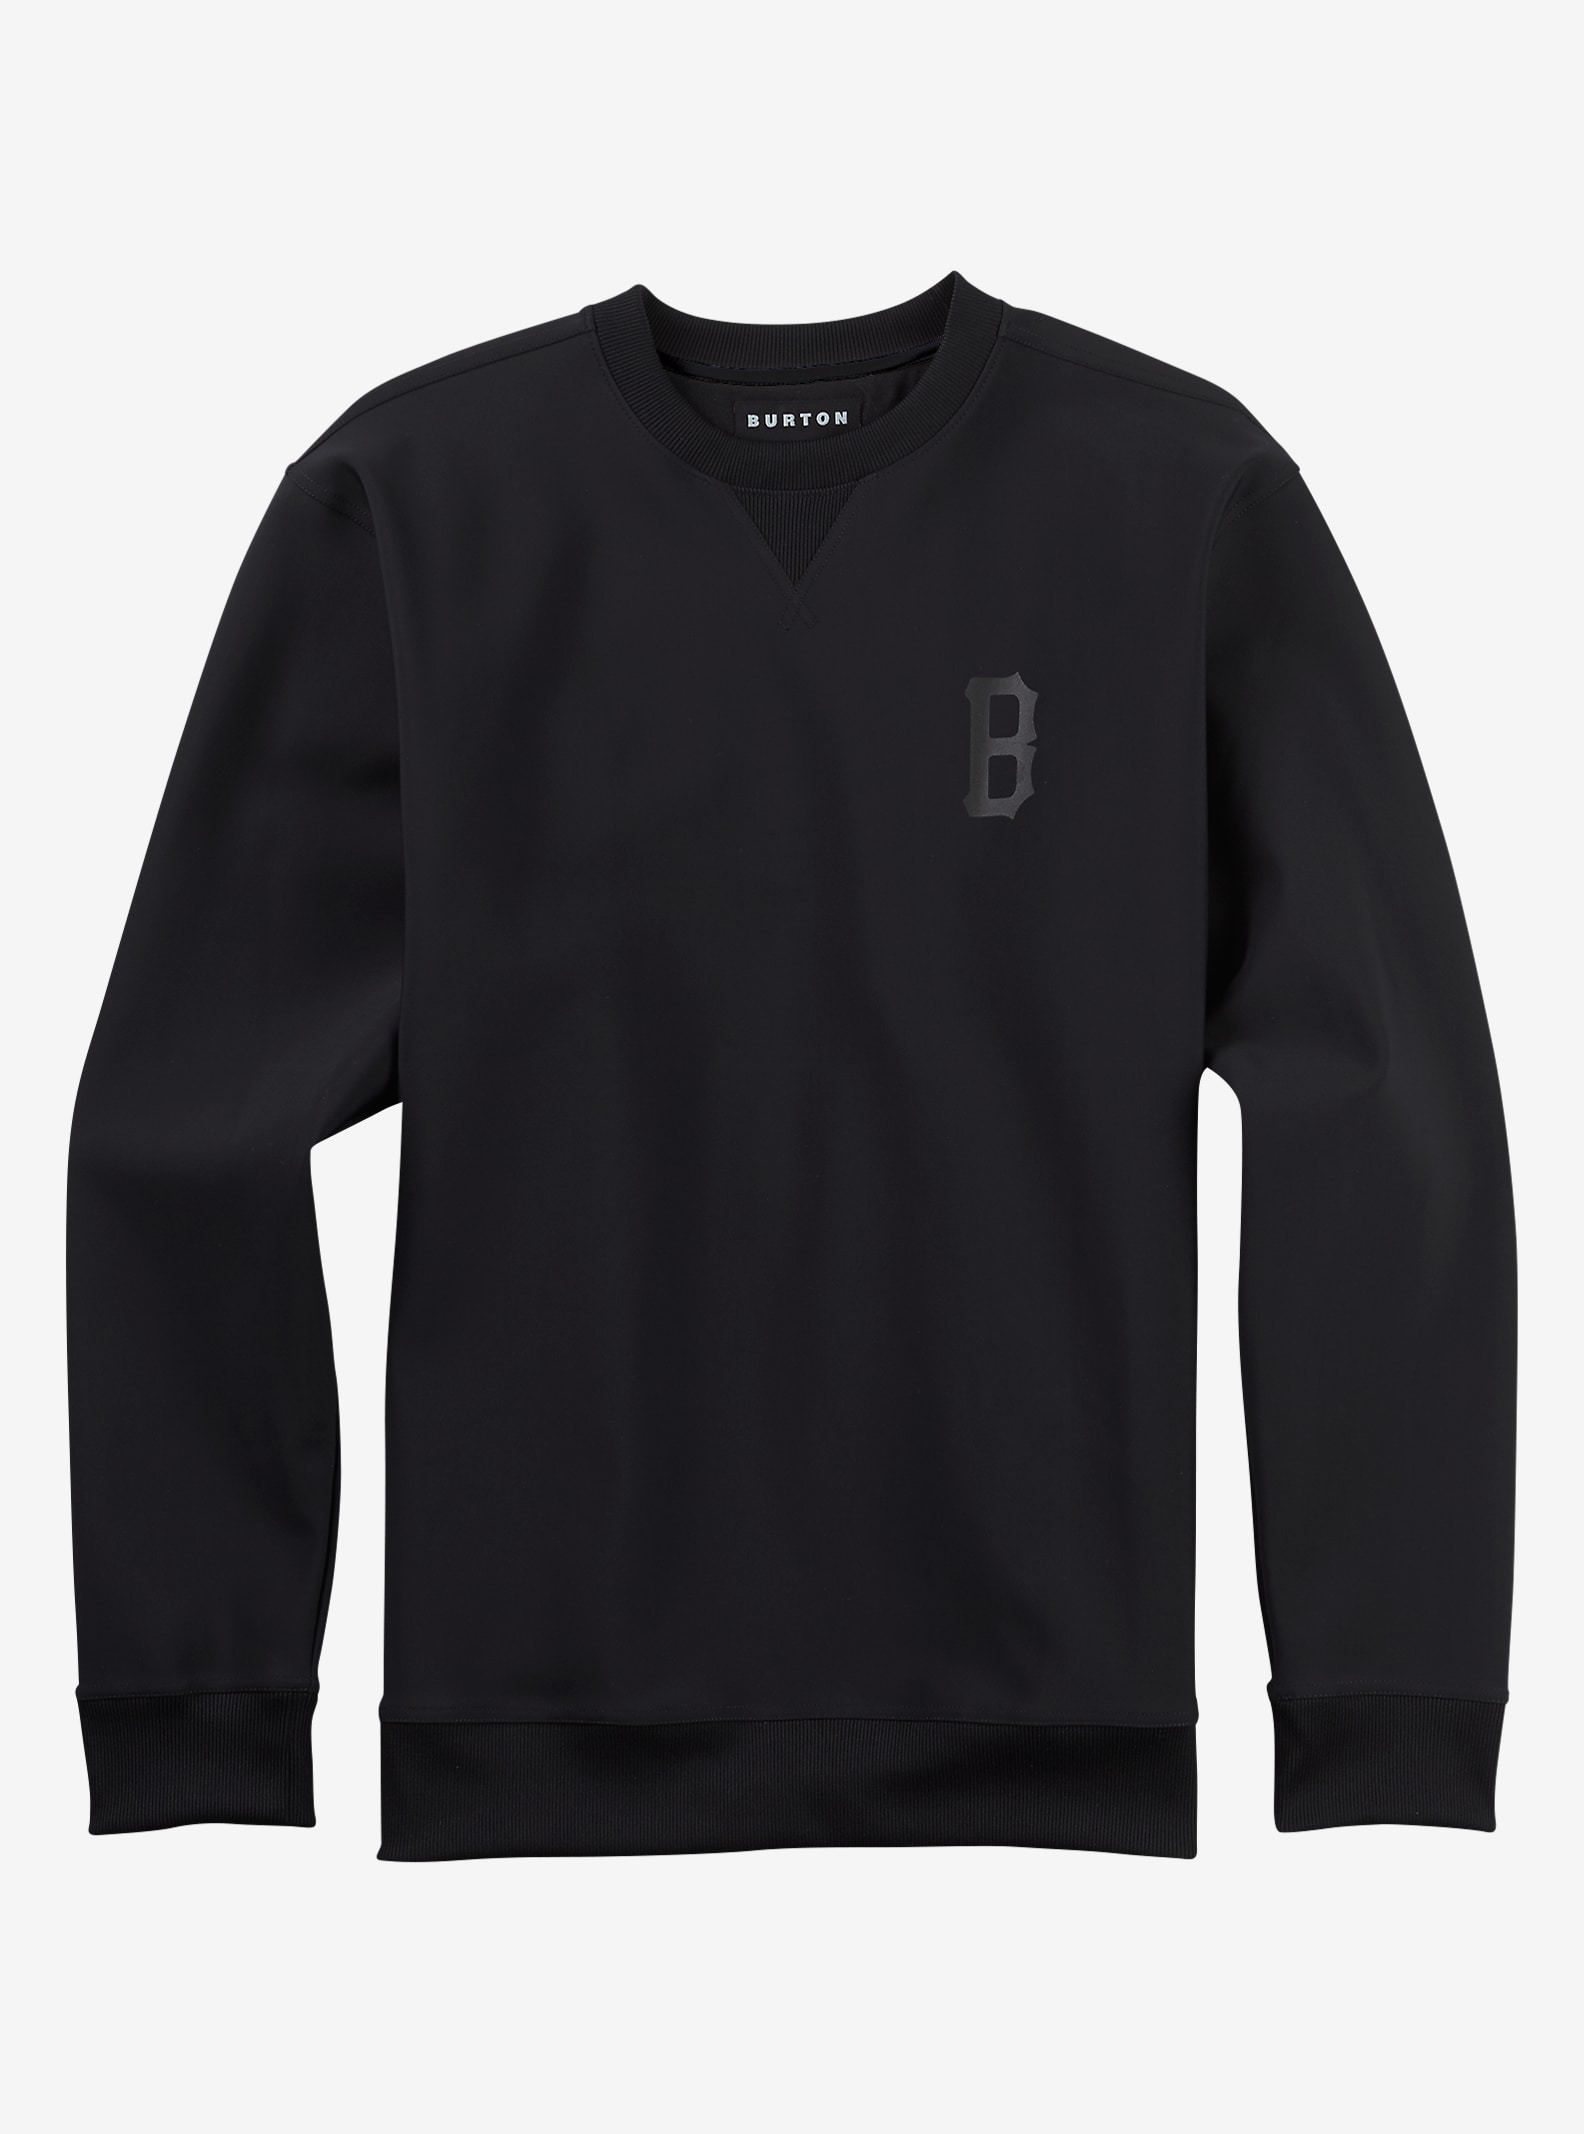 Black Scale x Burton Surrender Base Layer Crew shown in Black Scale Black